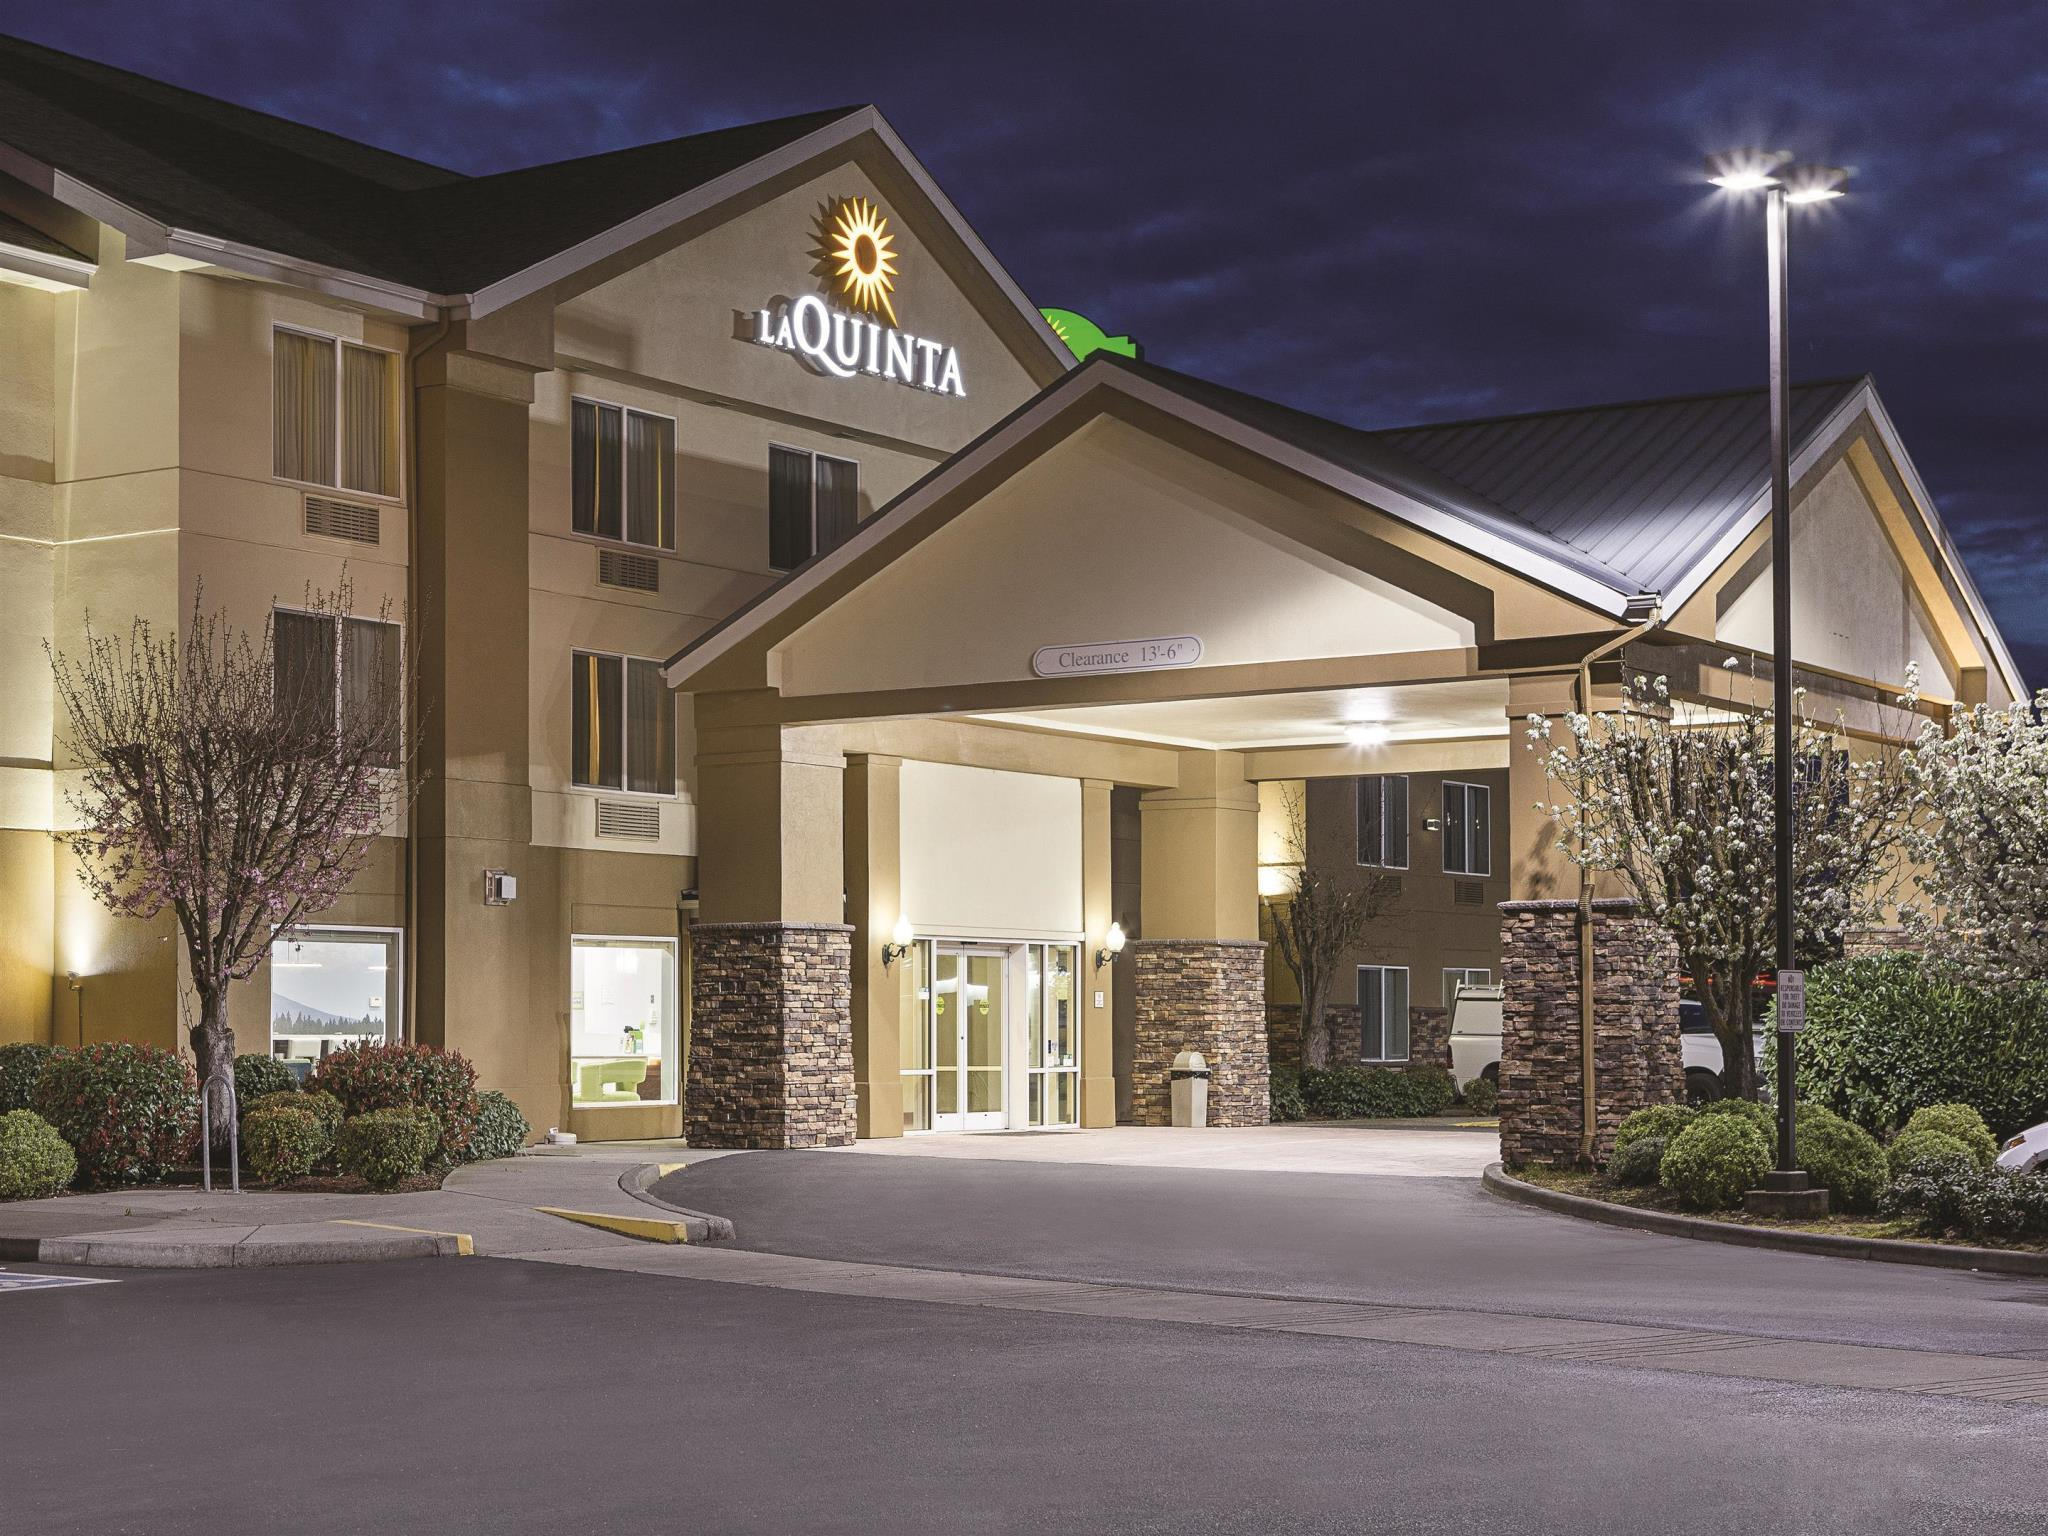 La Quinta Inn And Suites By Wyndham Central Point   Medford